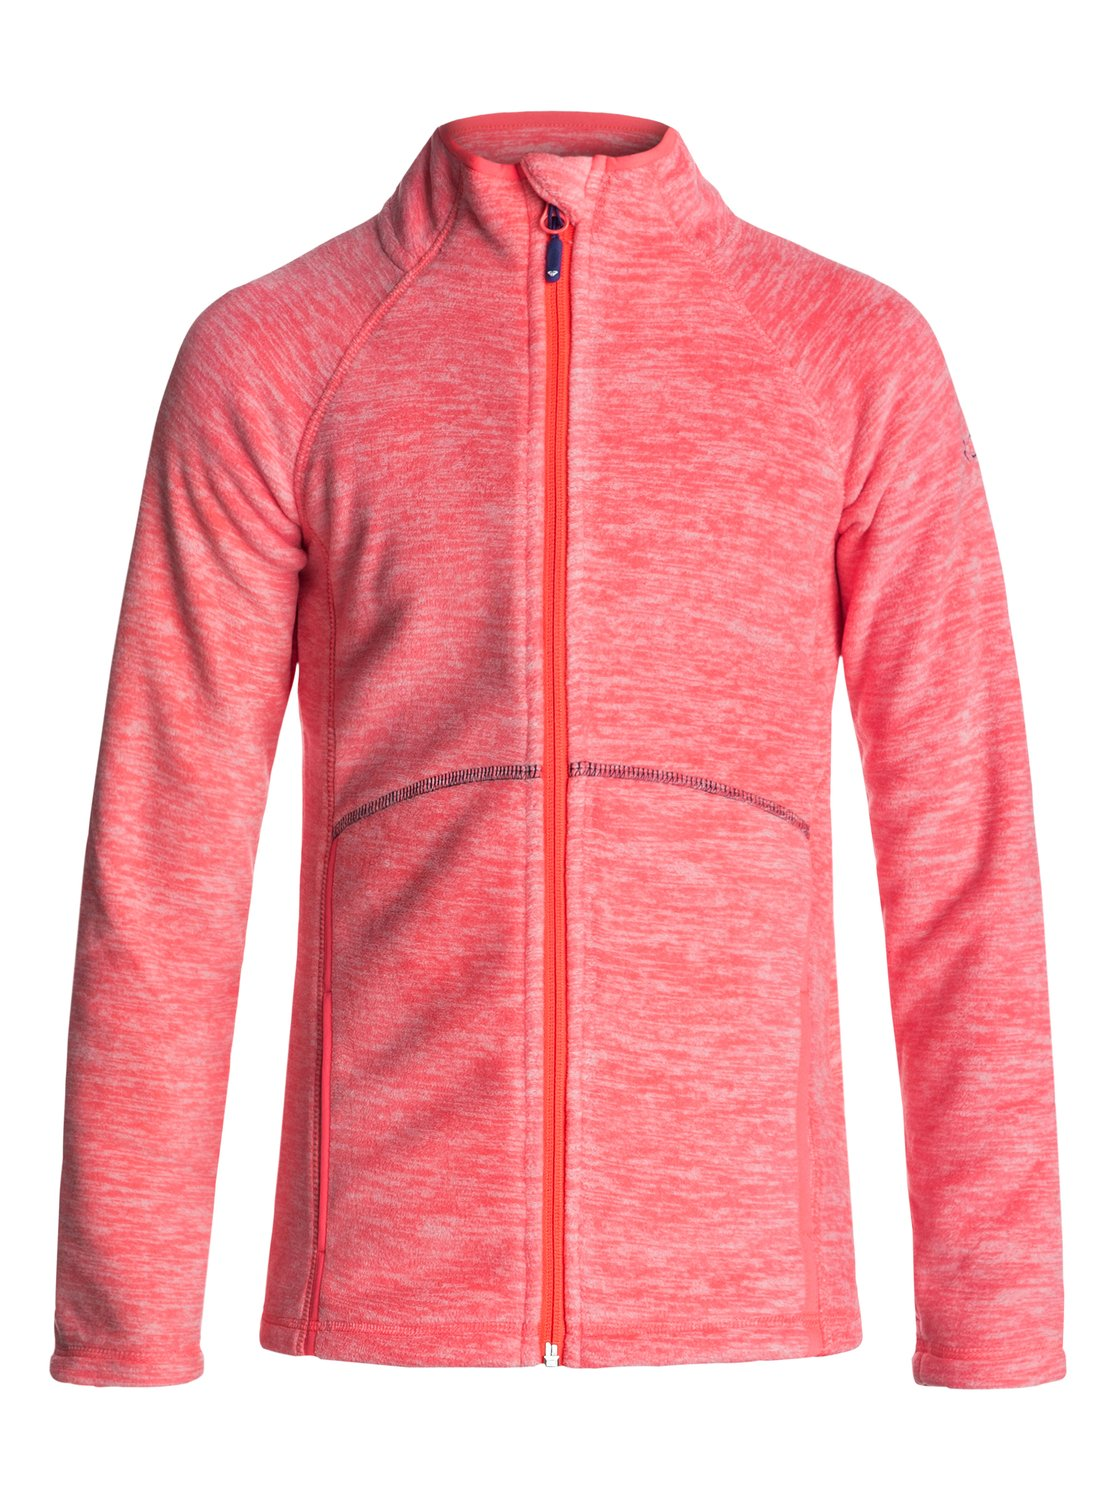 Harmony - Zip-Up Mid Layer<br>